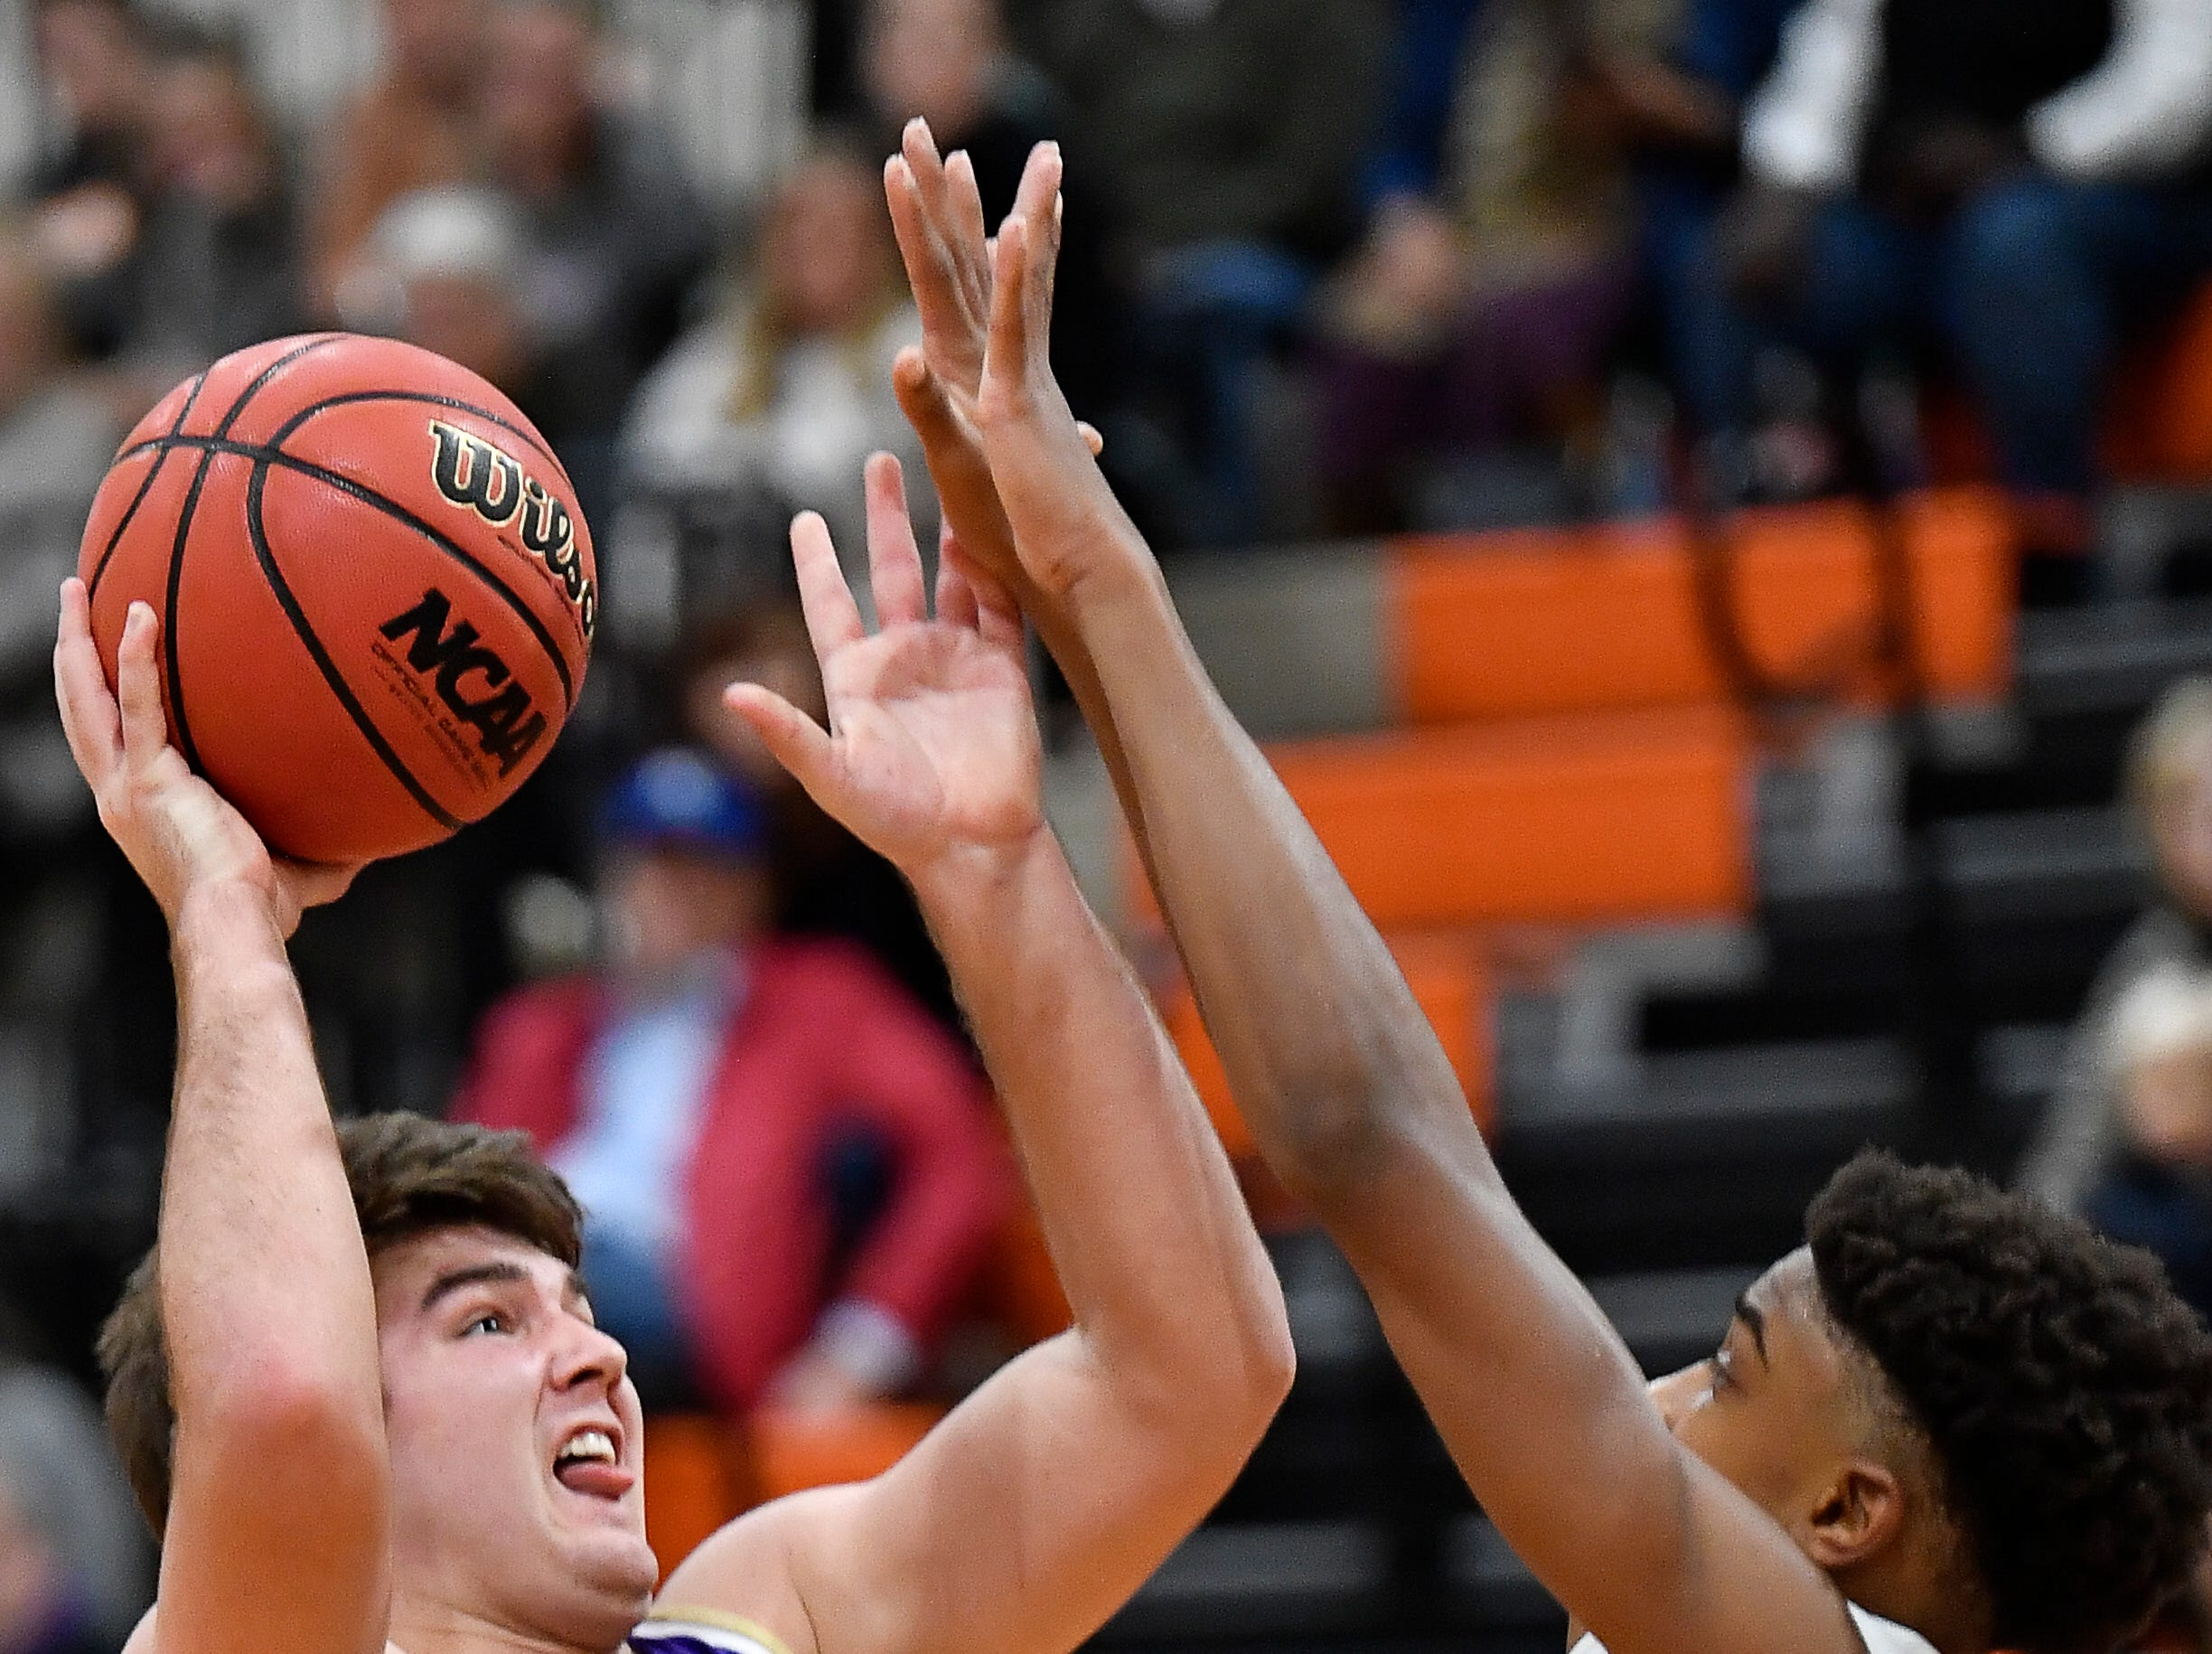 CPA's Mike McCormick (34) shoots over Ensworth guard Chaz Lanier (10) during their game at Ensworth High School Tuesday, Dec. 11, 2018, in Nashville, Tenn.